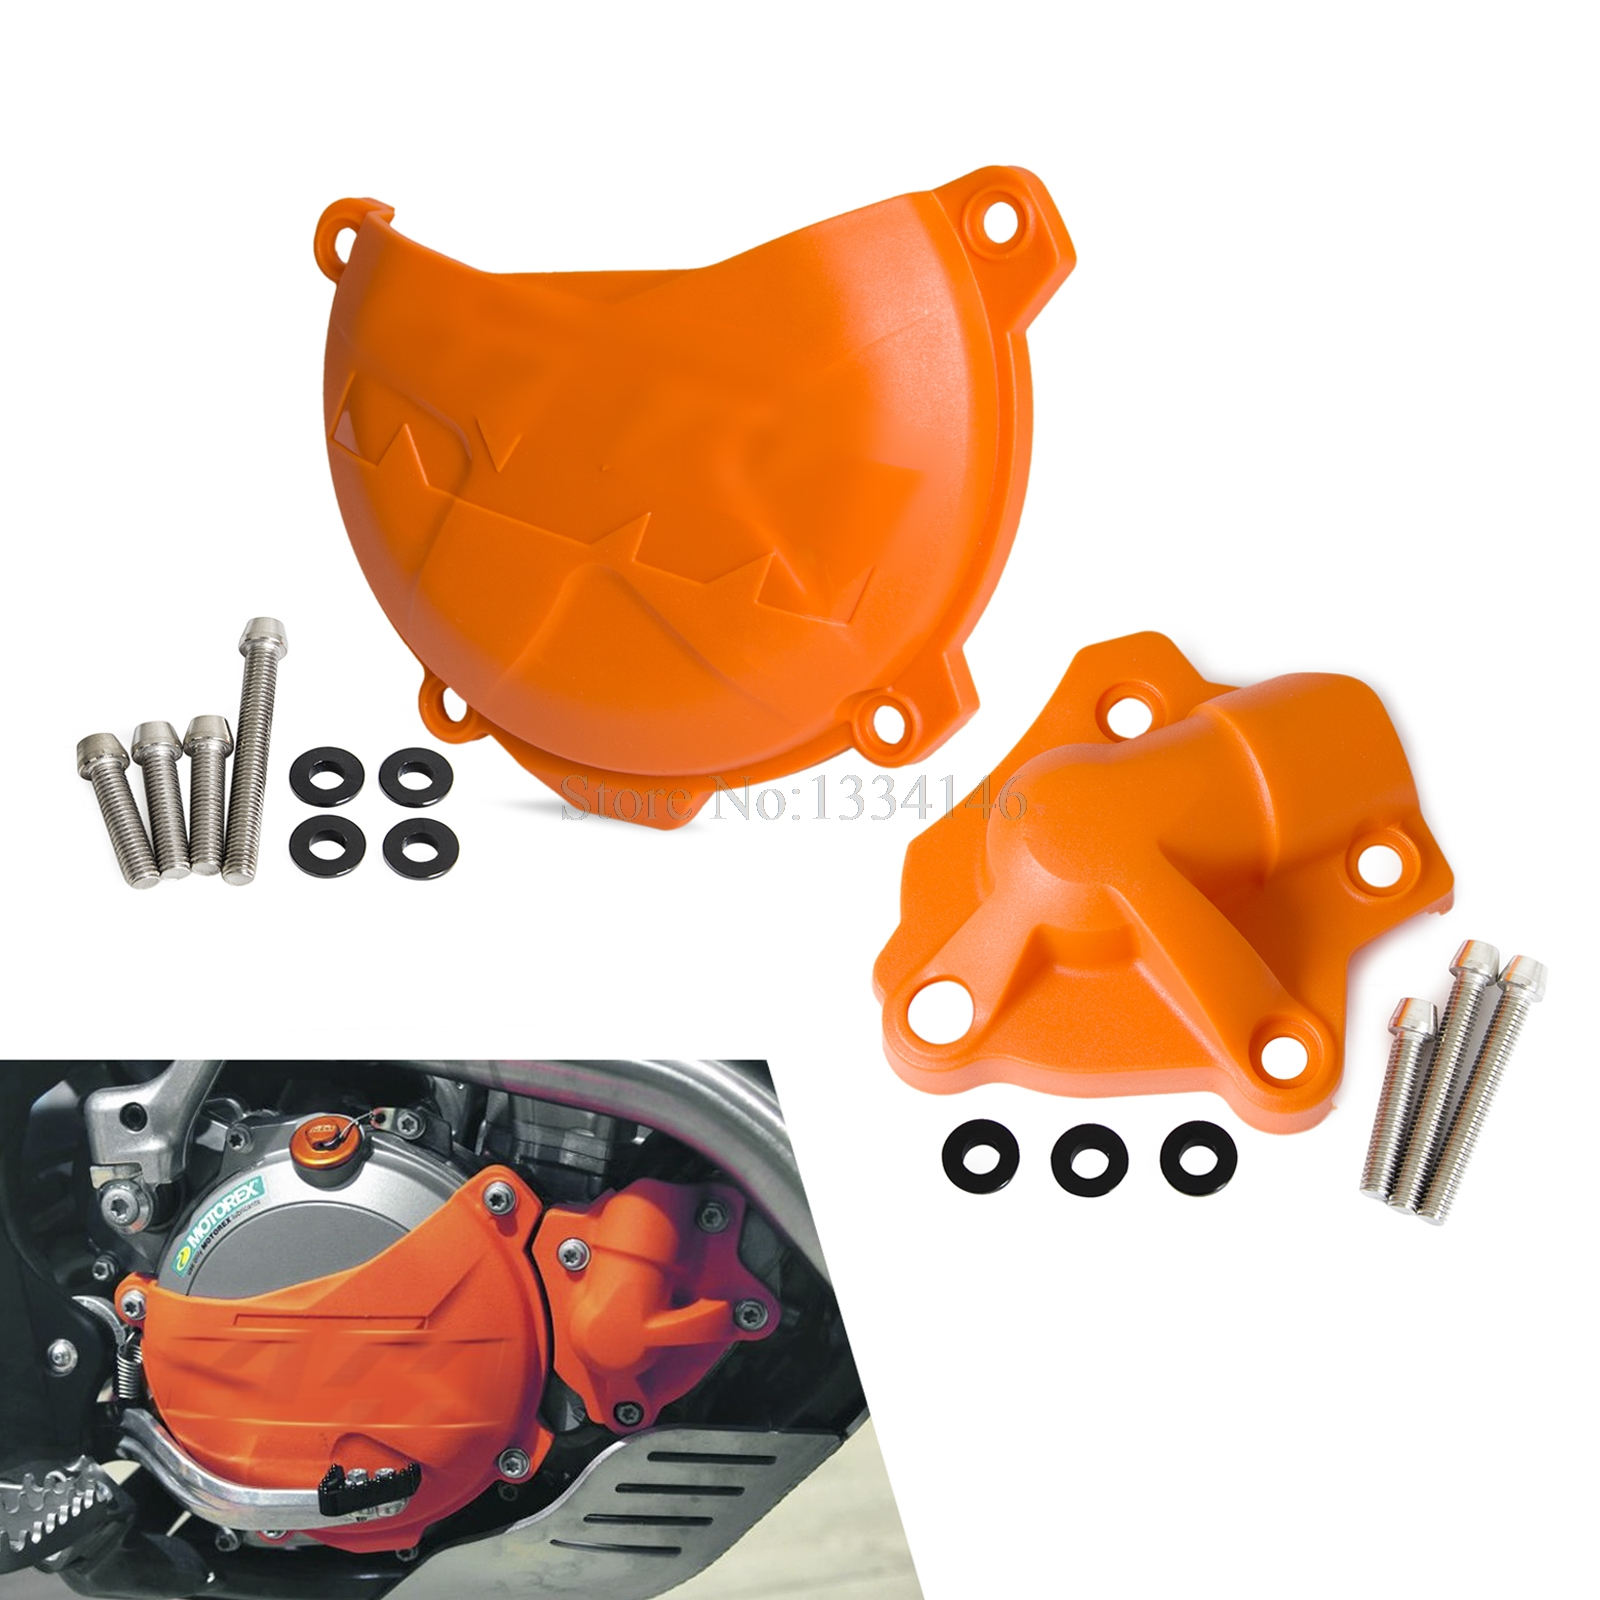 Motorcycle Clutch Cover Protection Cover Water Pump Cover Protector Fit For KTM 250 350 SXF EXCF XC-F XCF-W 2013 2014 2015 2016 compatible xerox color 560 550 570 digital printer color laser printer toner powder kcmy 4kg free shipping high quality